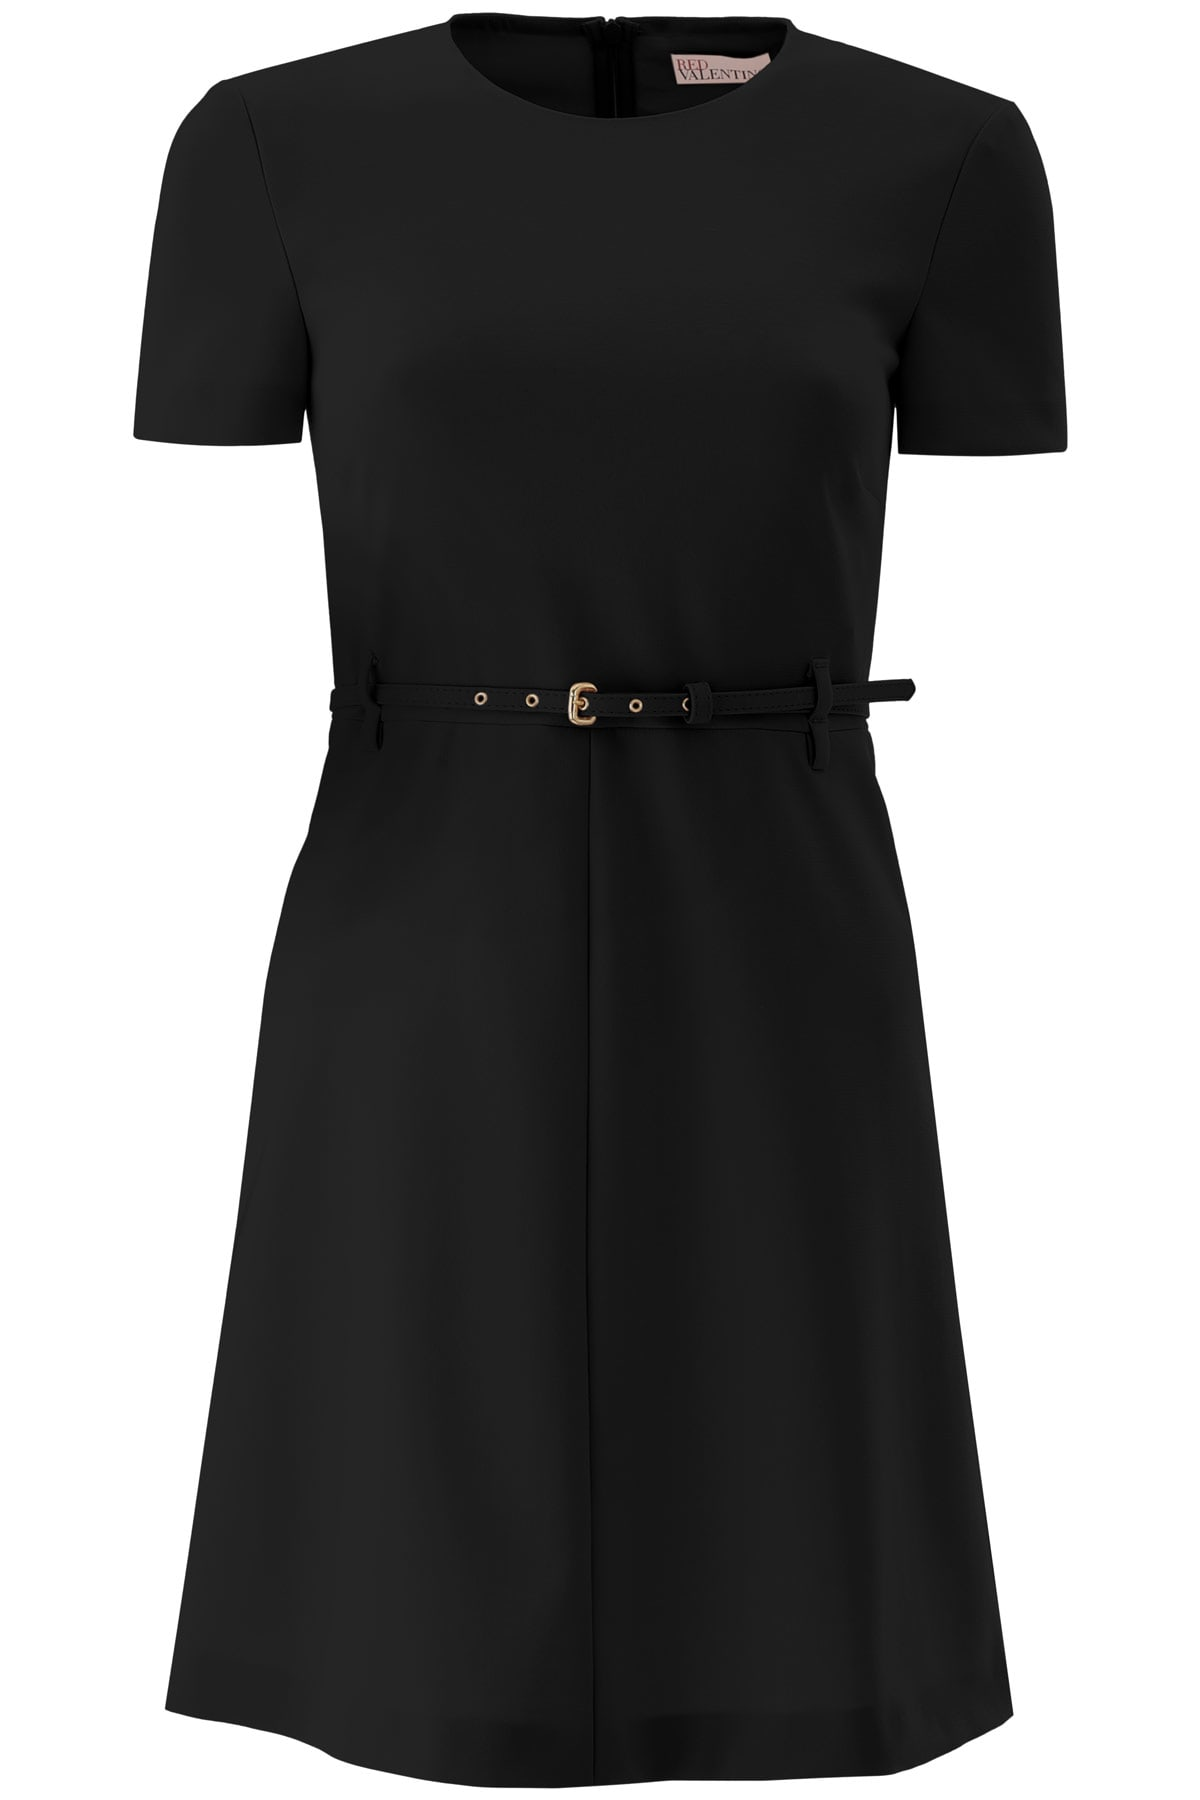 Buy RED Valentino Mini Dress With Belt online, shop RED Valentino with free shipping